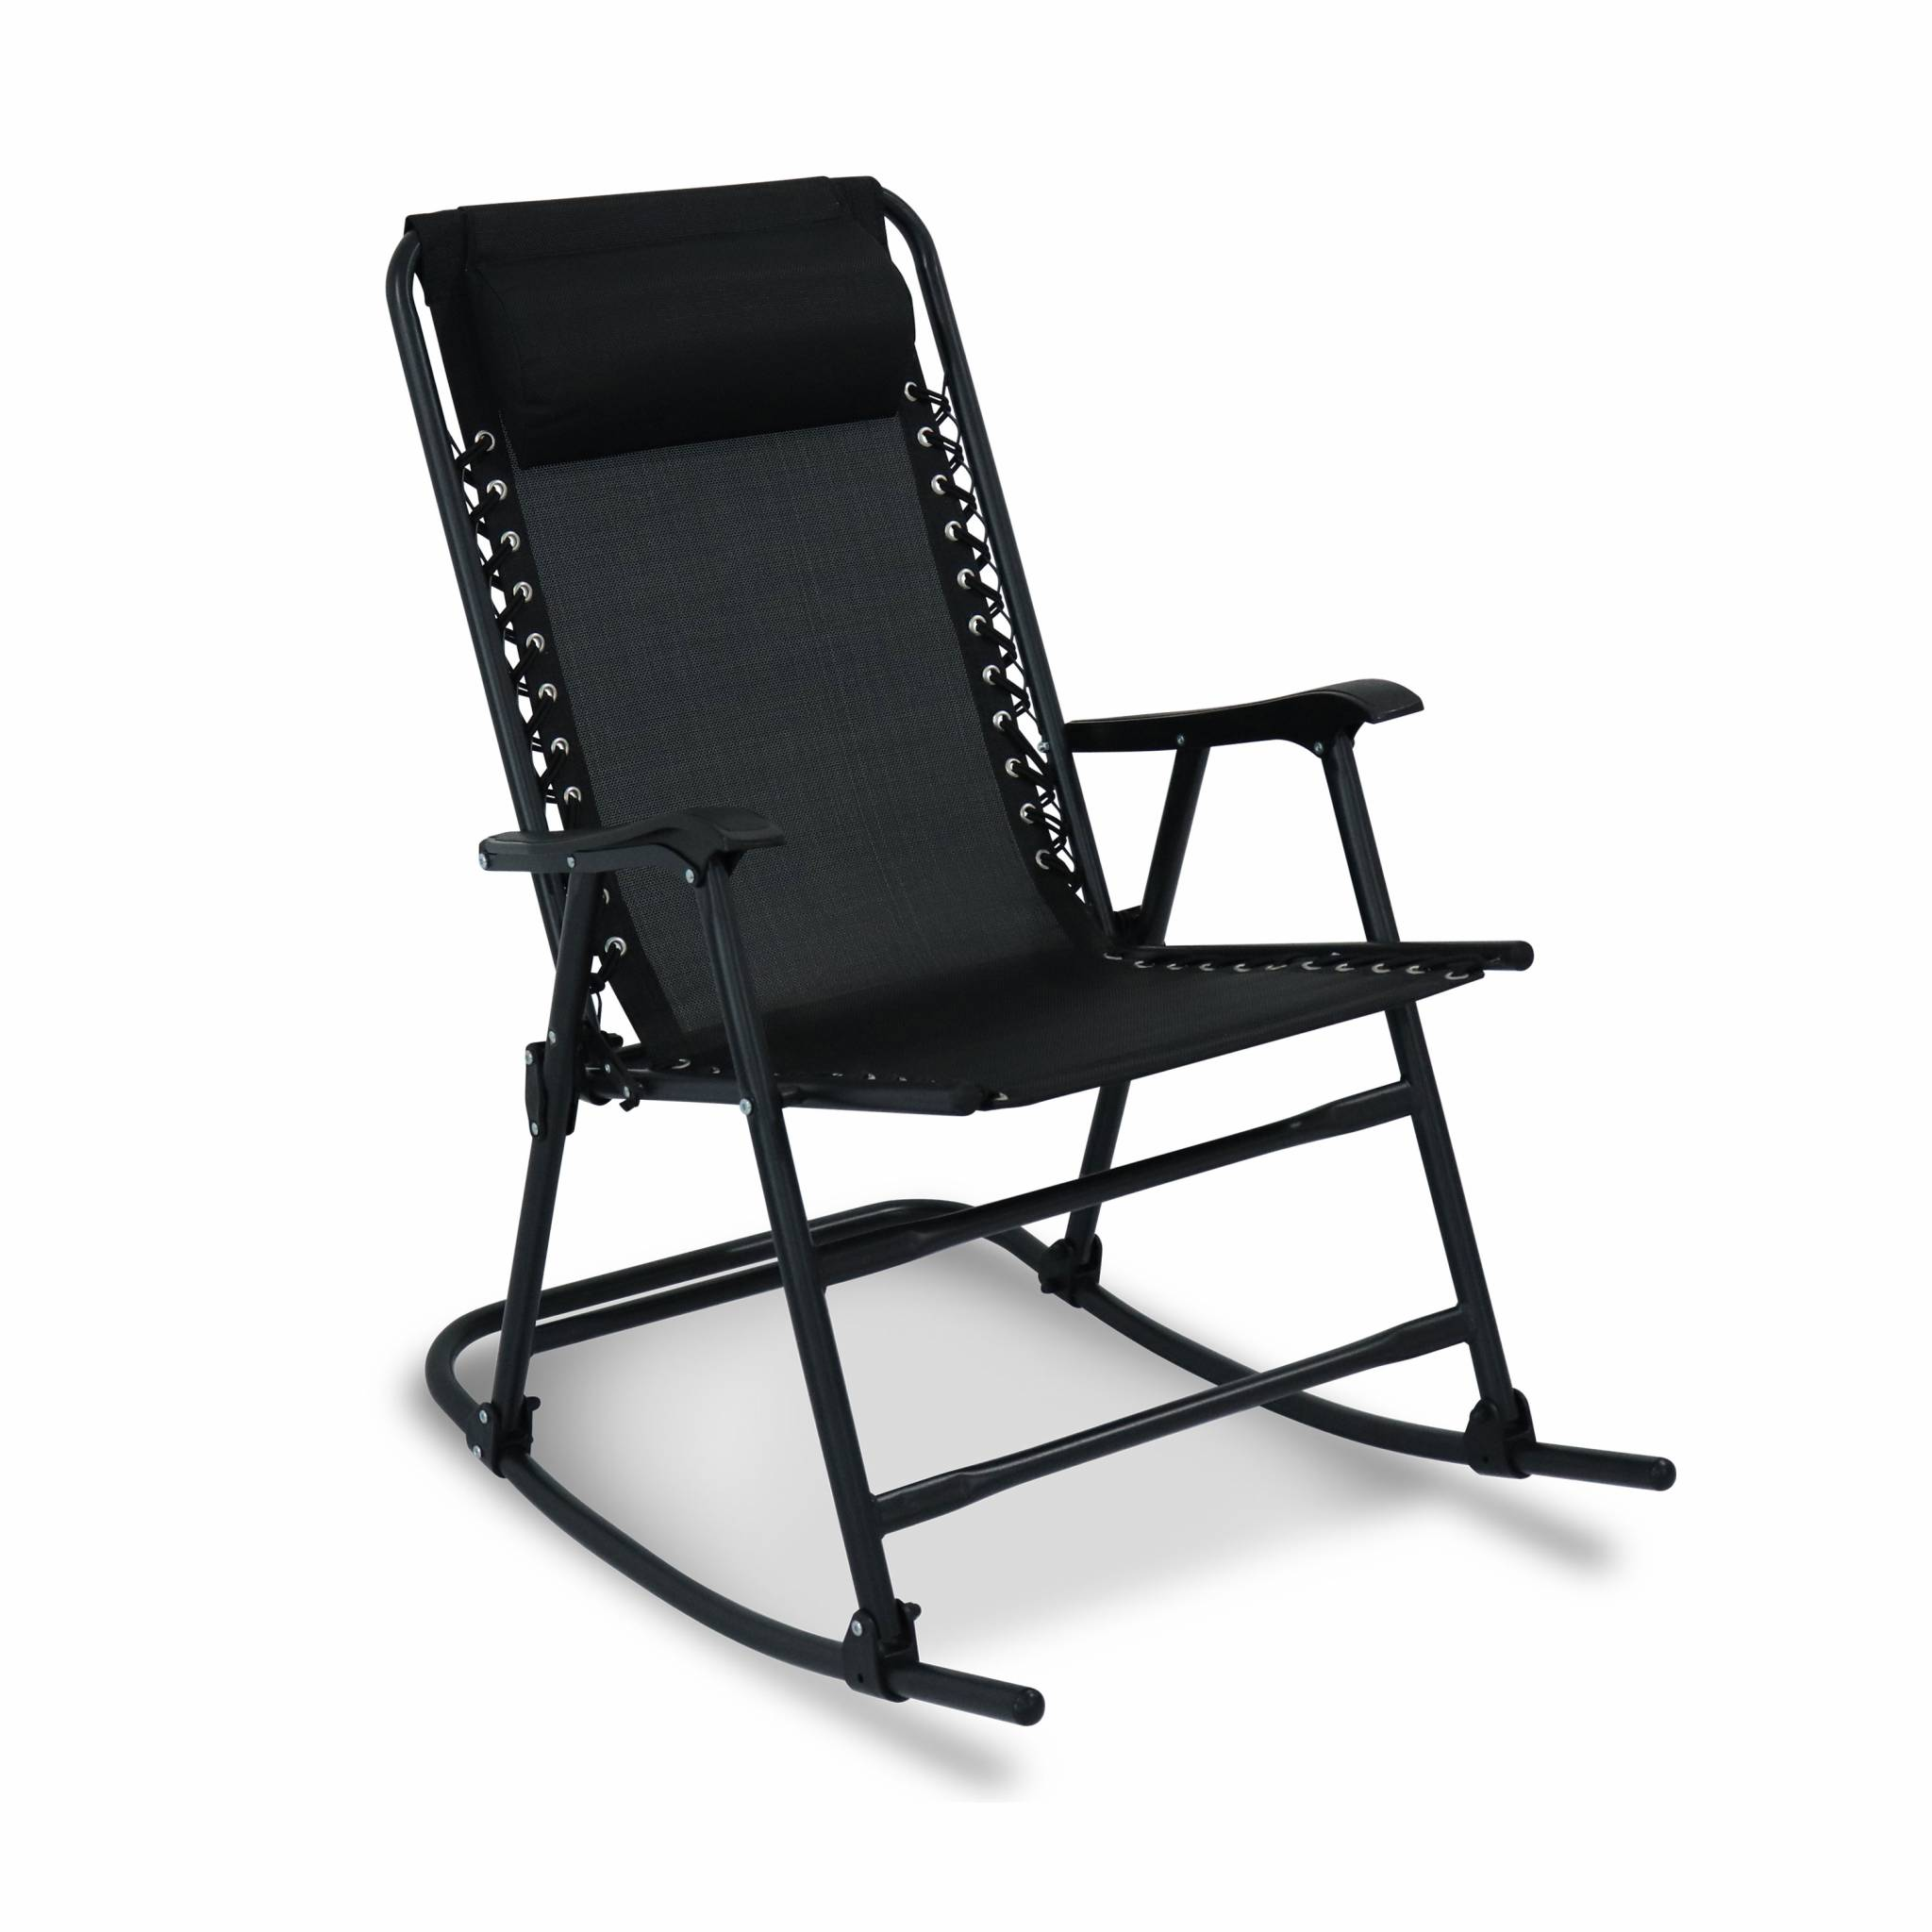 Fauteuil à bascule design rocking chair pliable